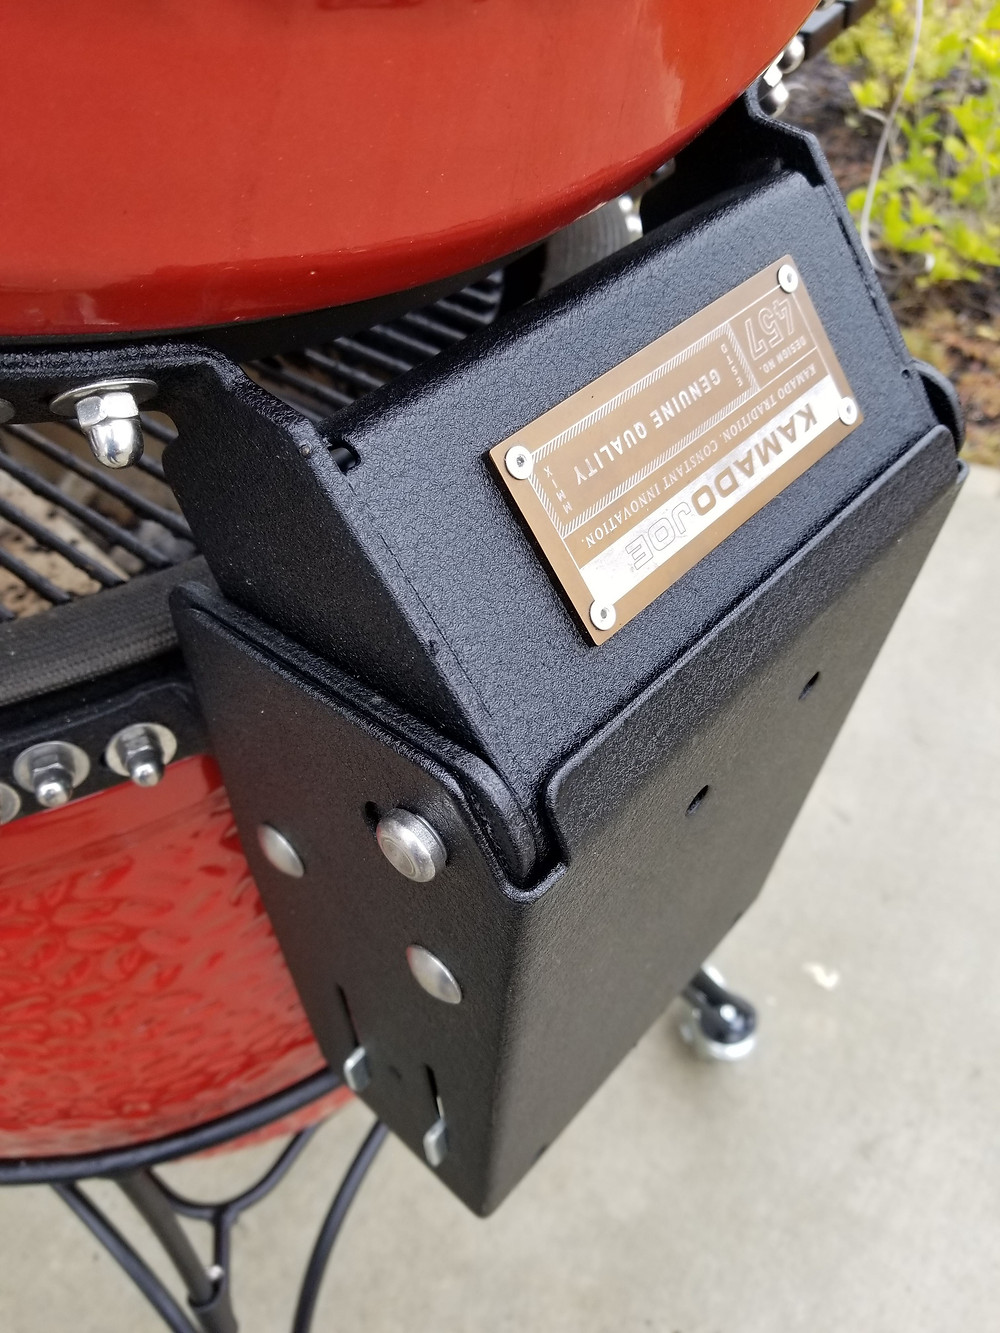 Air Lift Hinge on the Kamado Joe